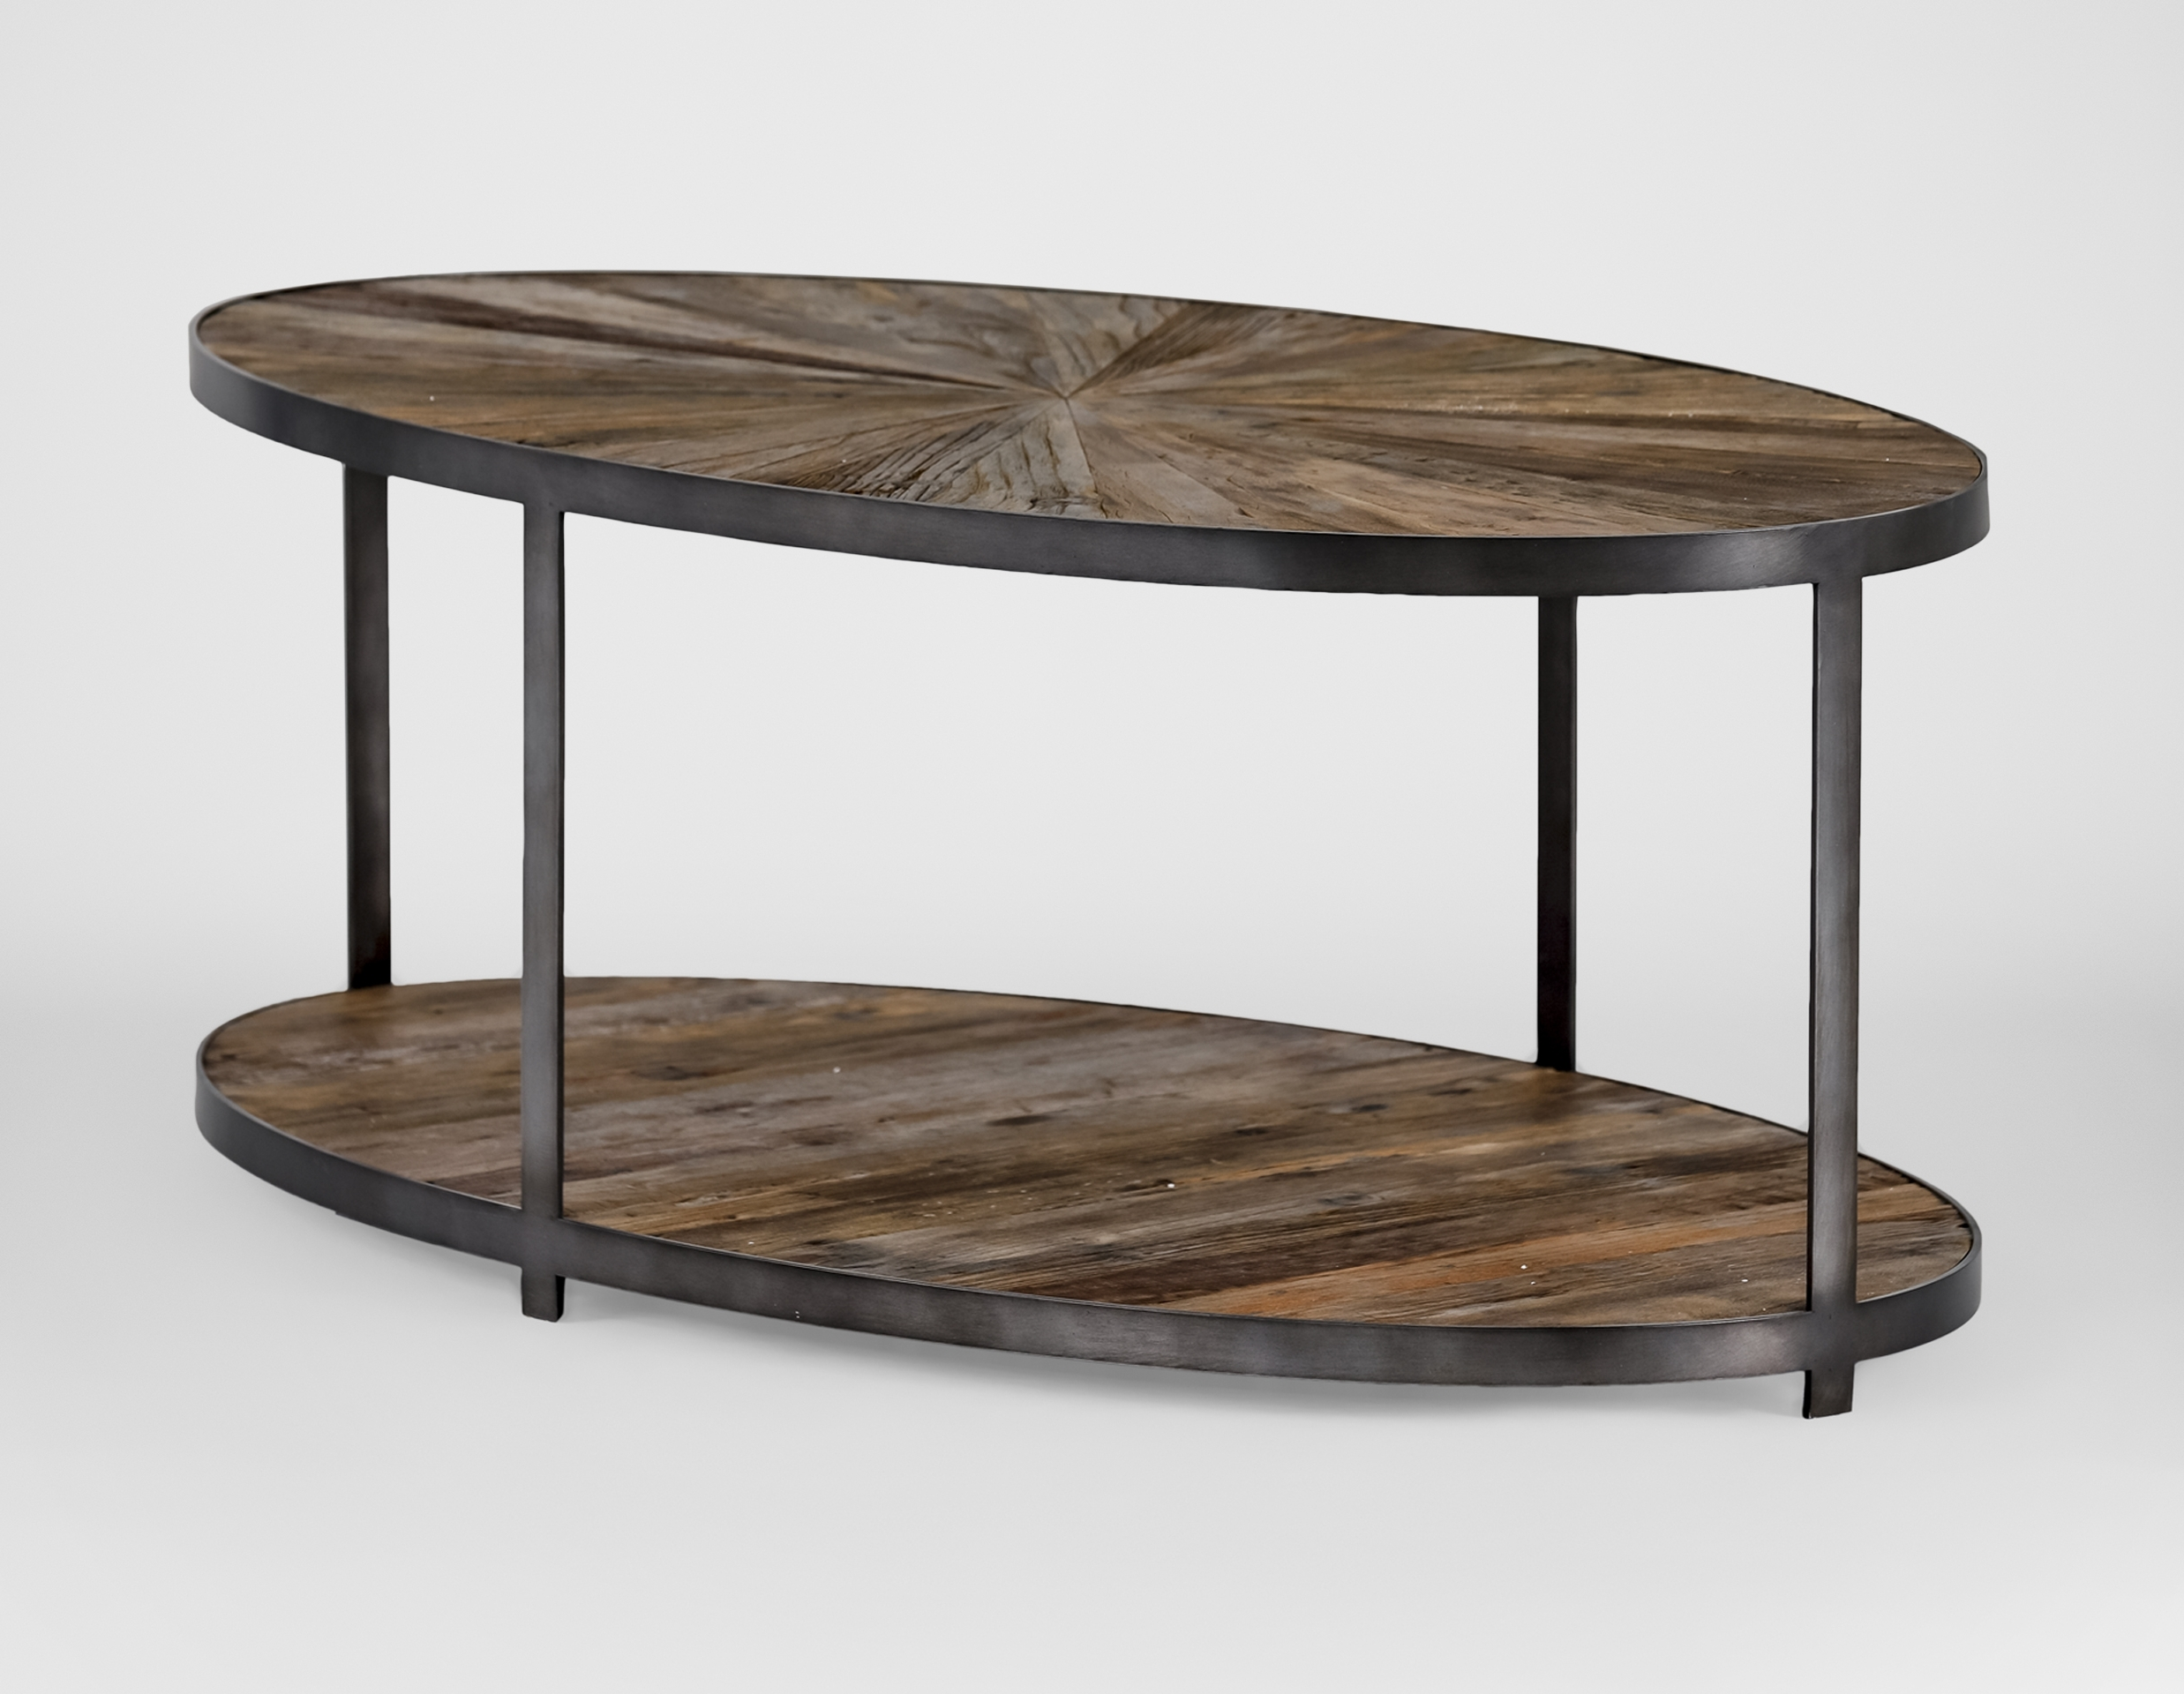 Gabby Ronald Reclaimed Wood Sunburst Oval Coffee Table Intended For Most Current Reclaimed Elm Iron Coffee Tables (View 8 of 20)